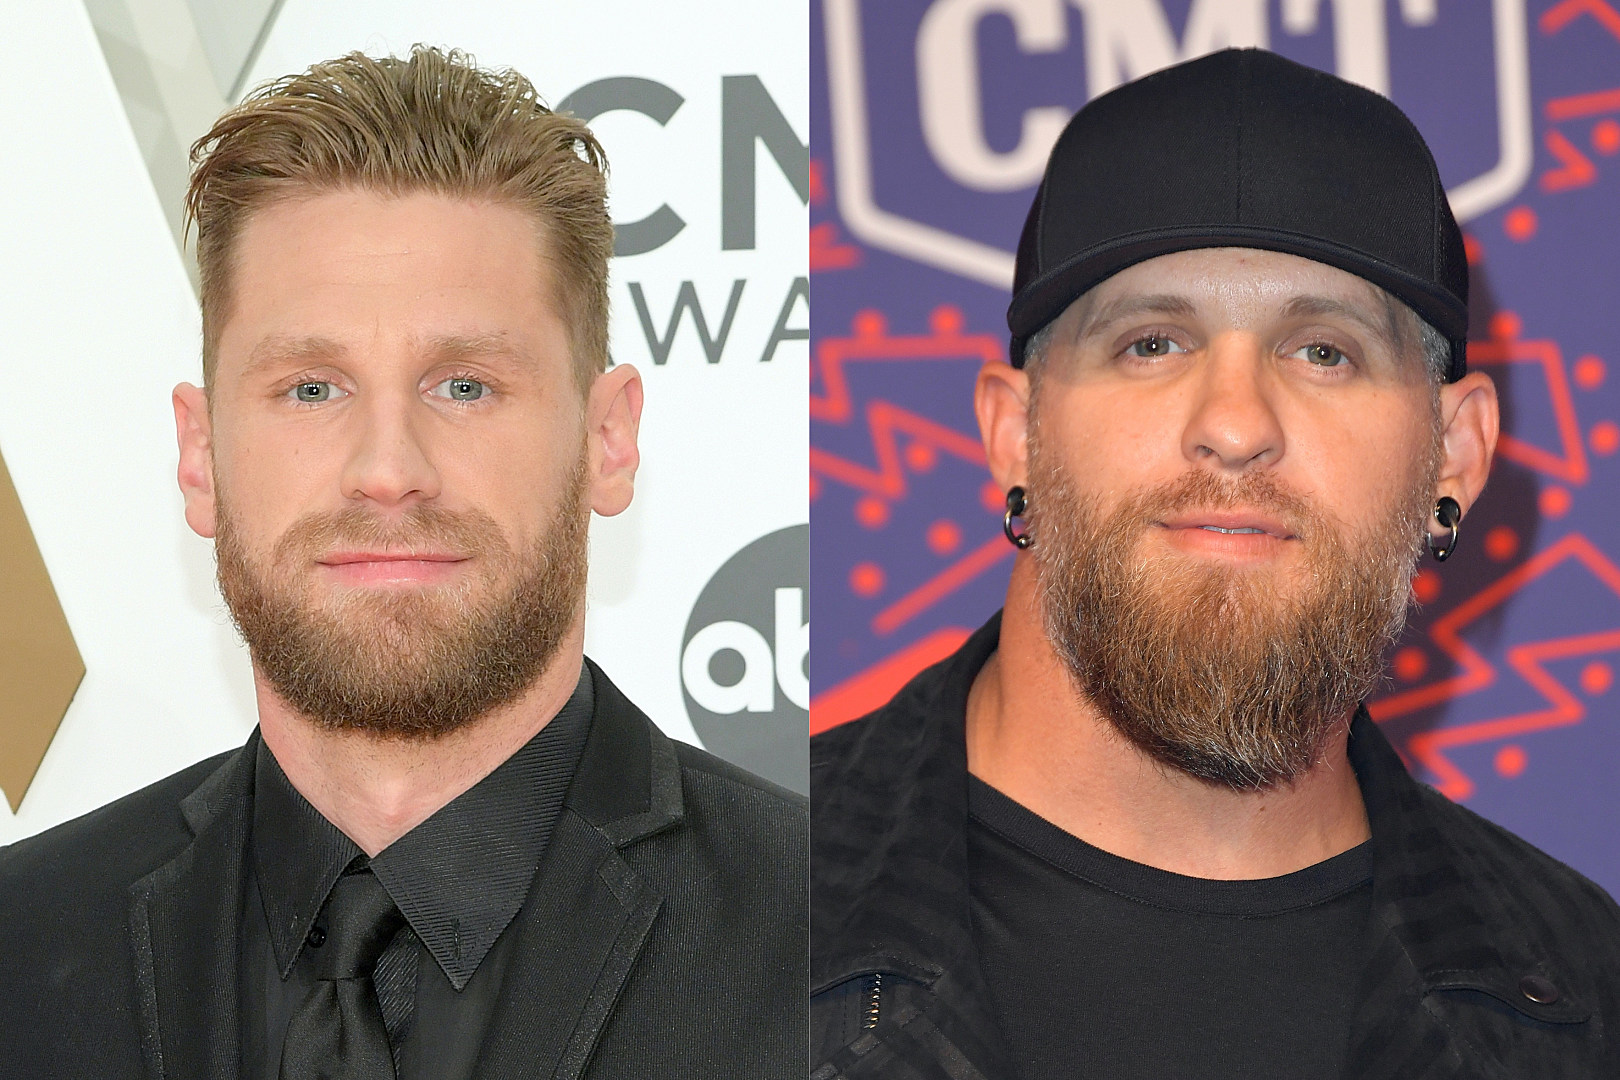 Chase Rice Counts On Brantley Gilbert To Keep Him Out Of Trouble